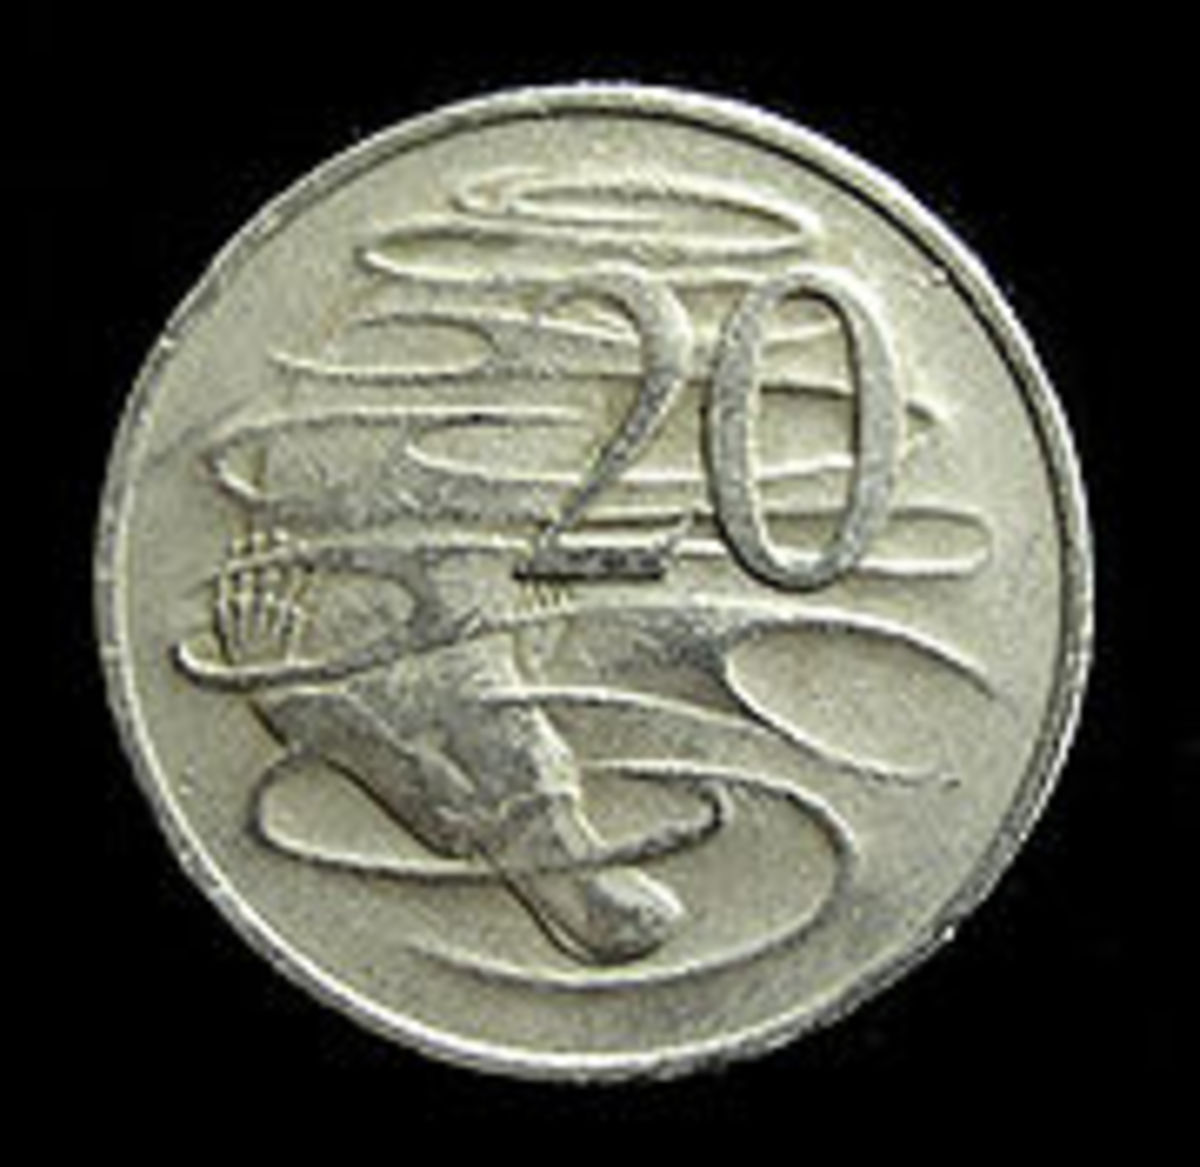 The Platypus on Australia's 20 cent coin.